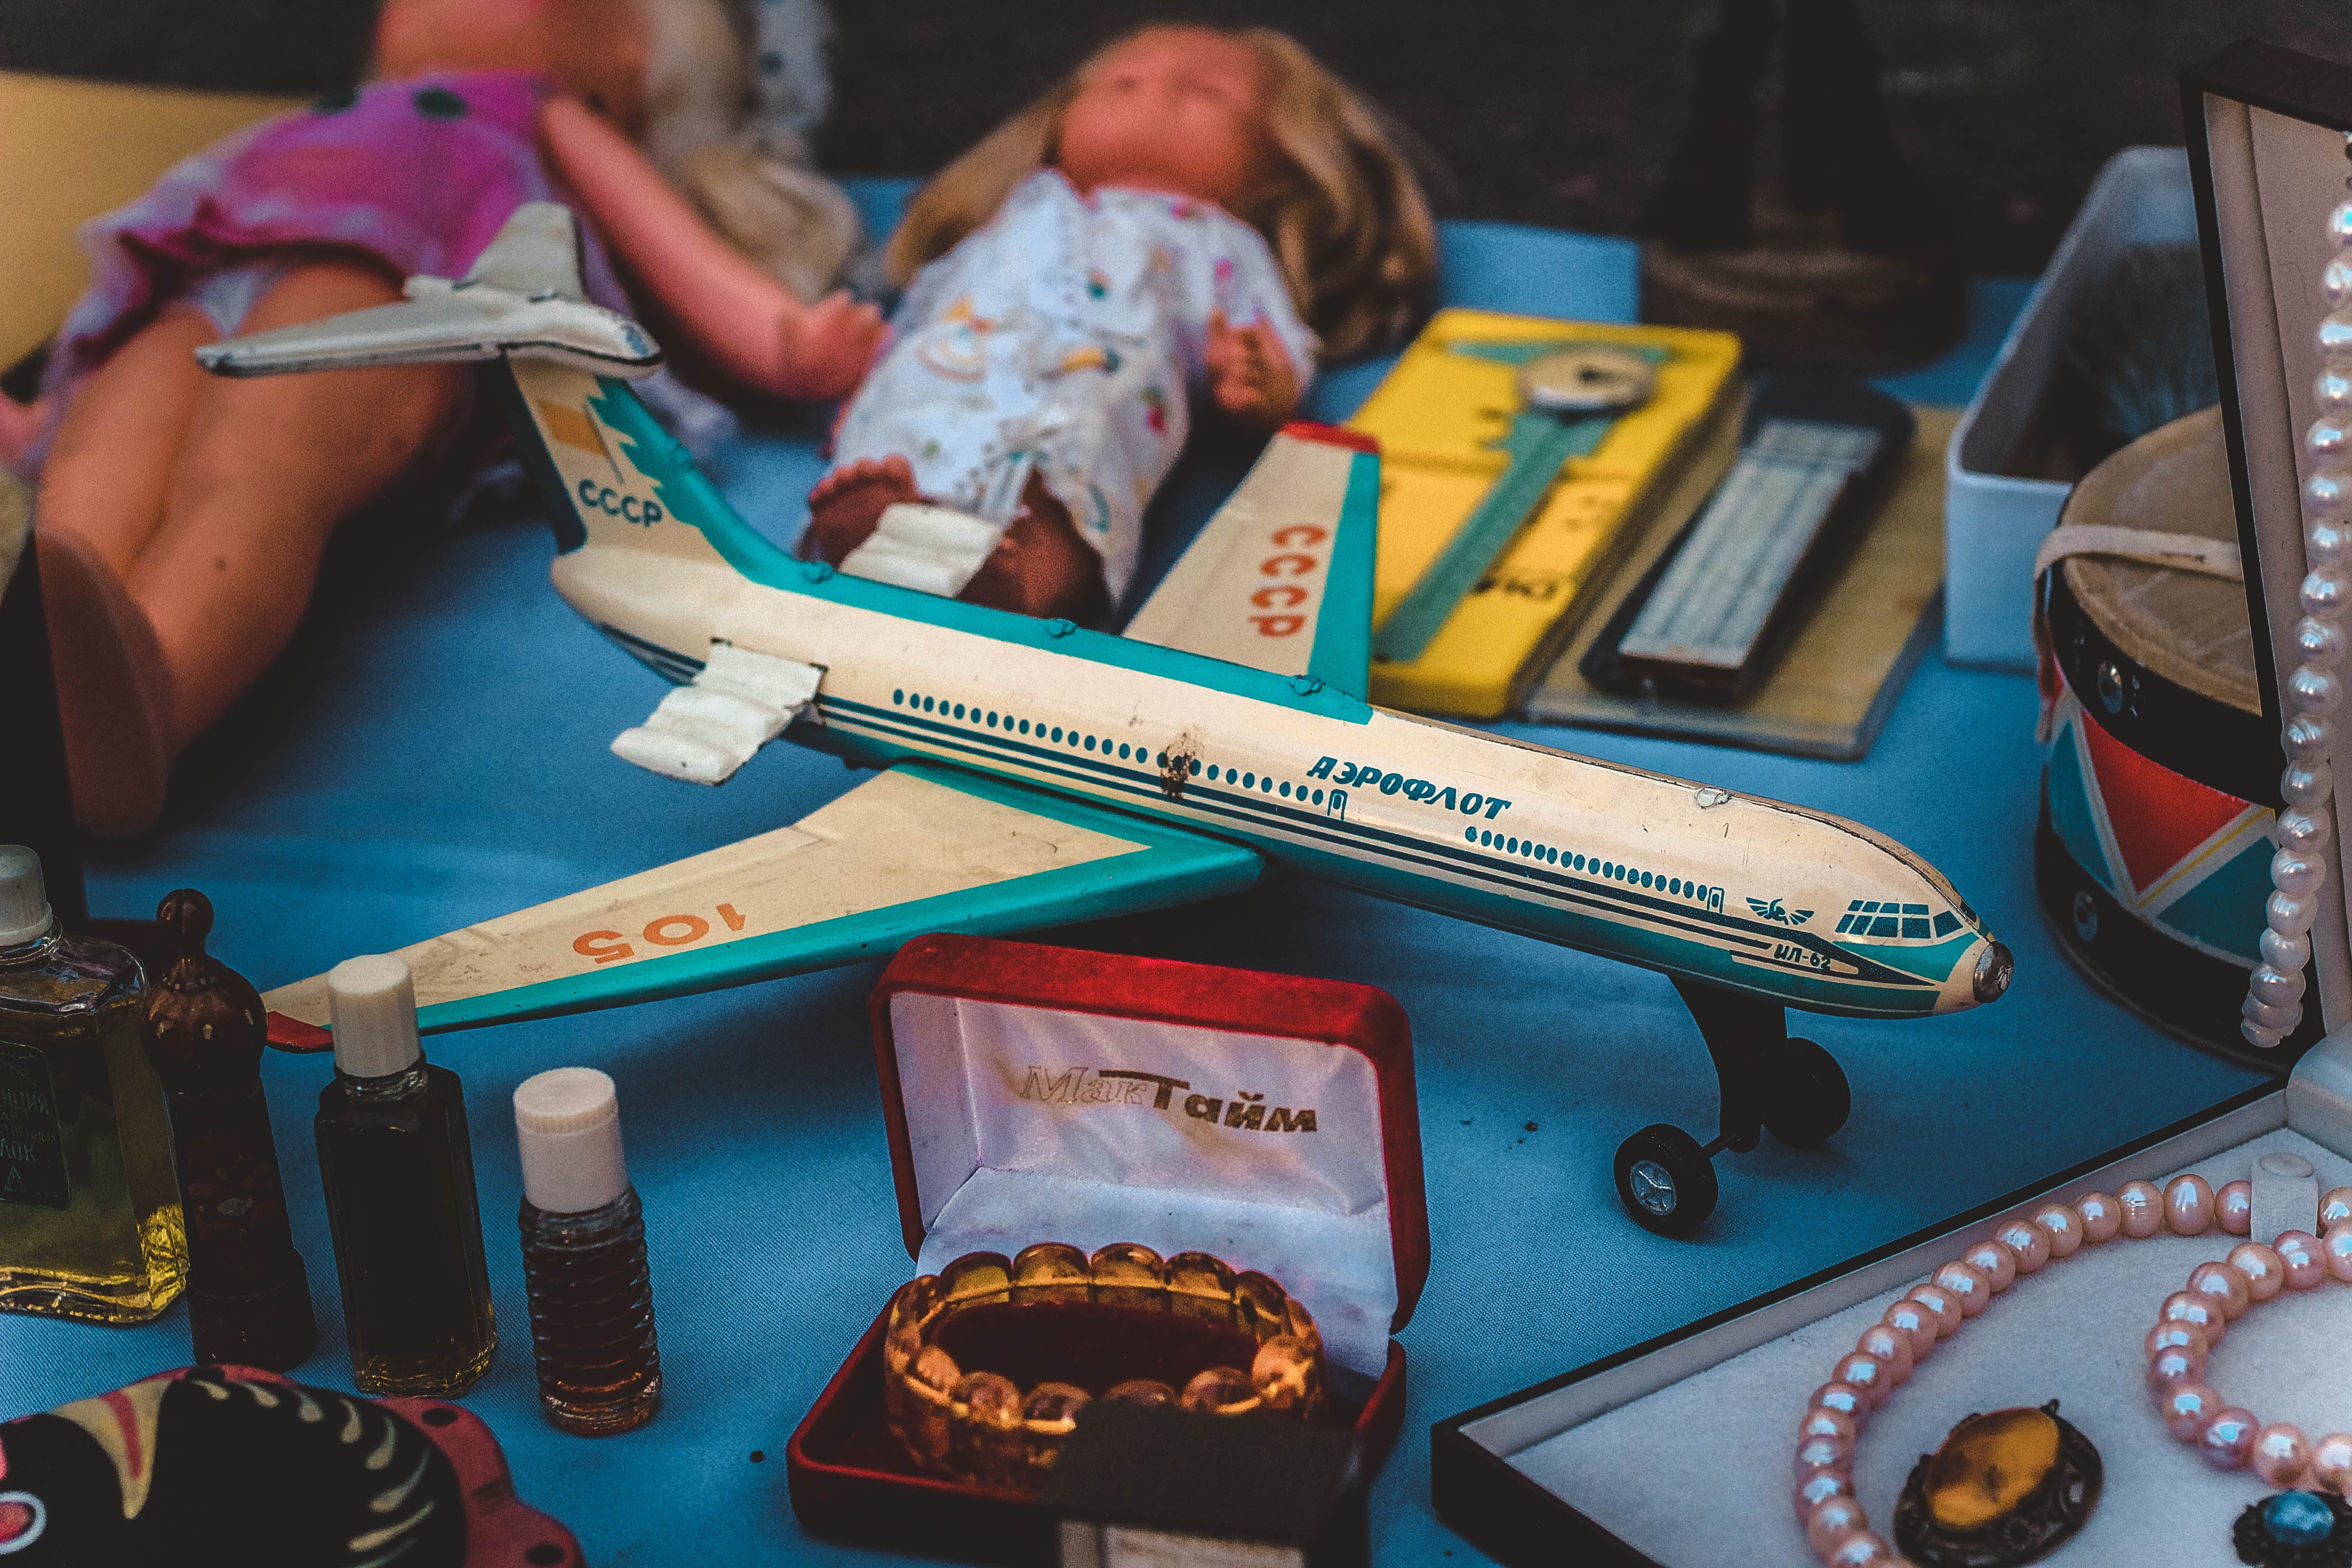 closeup photo of airplane scale model and jewelry